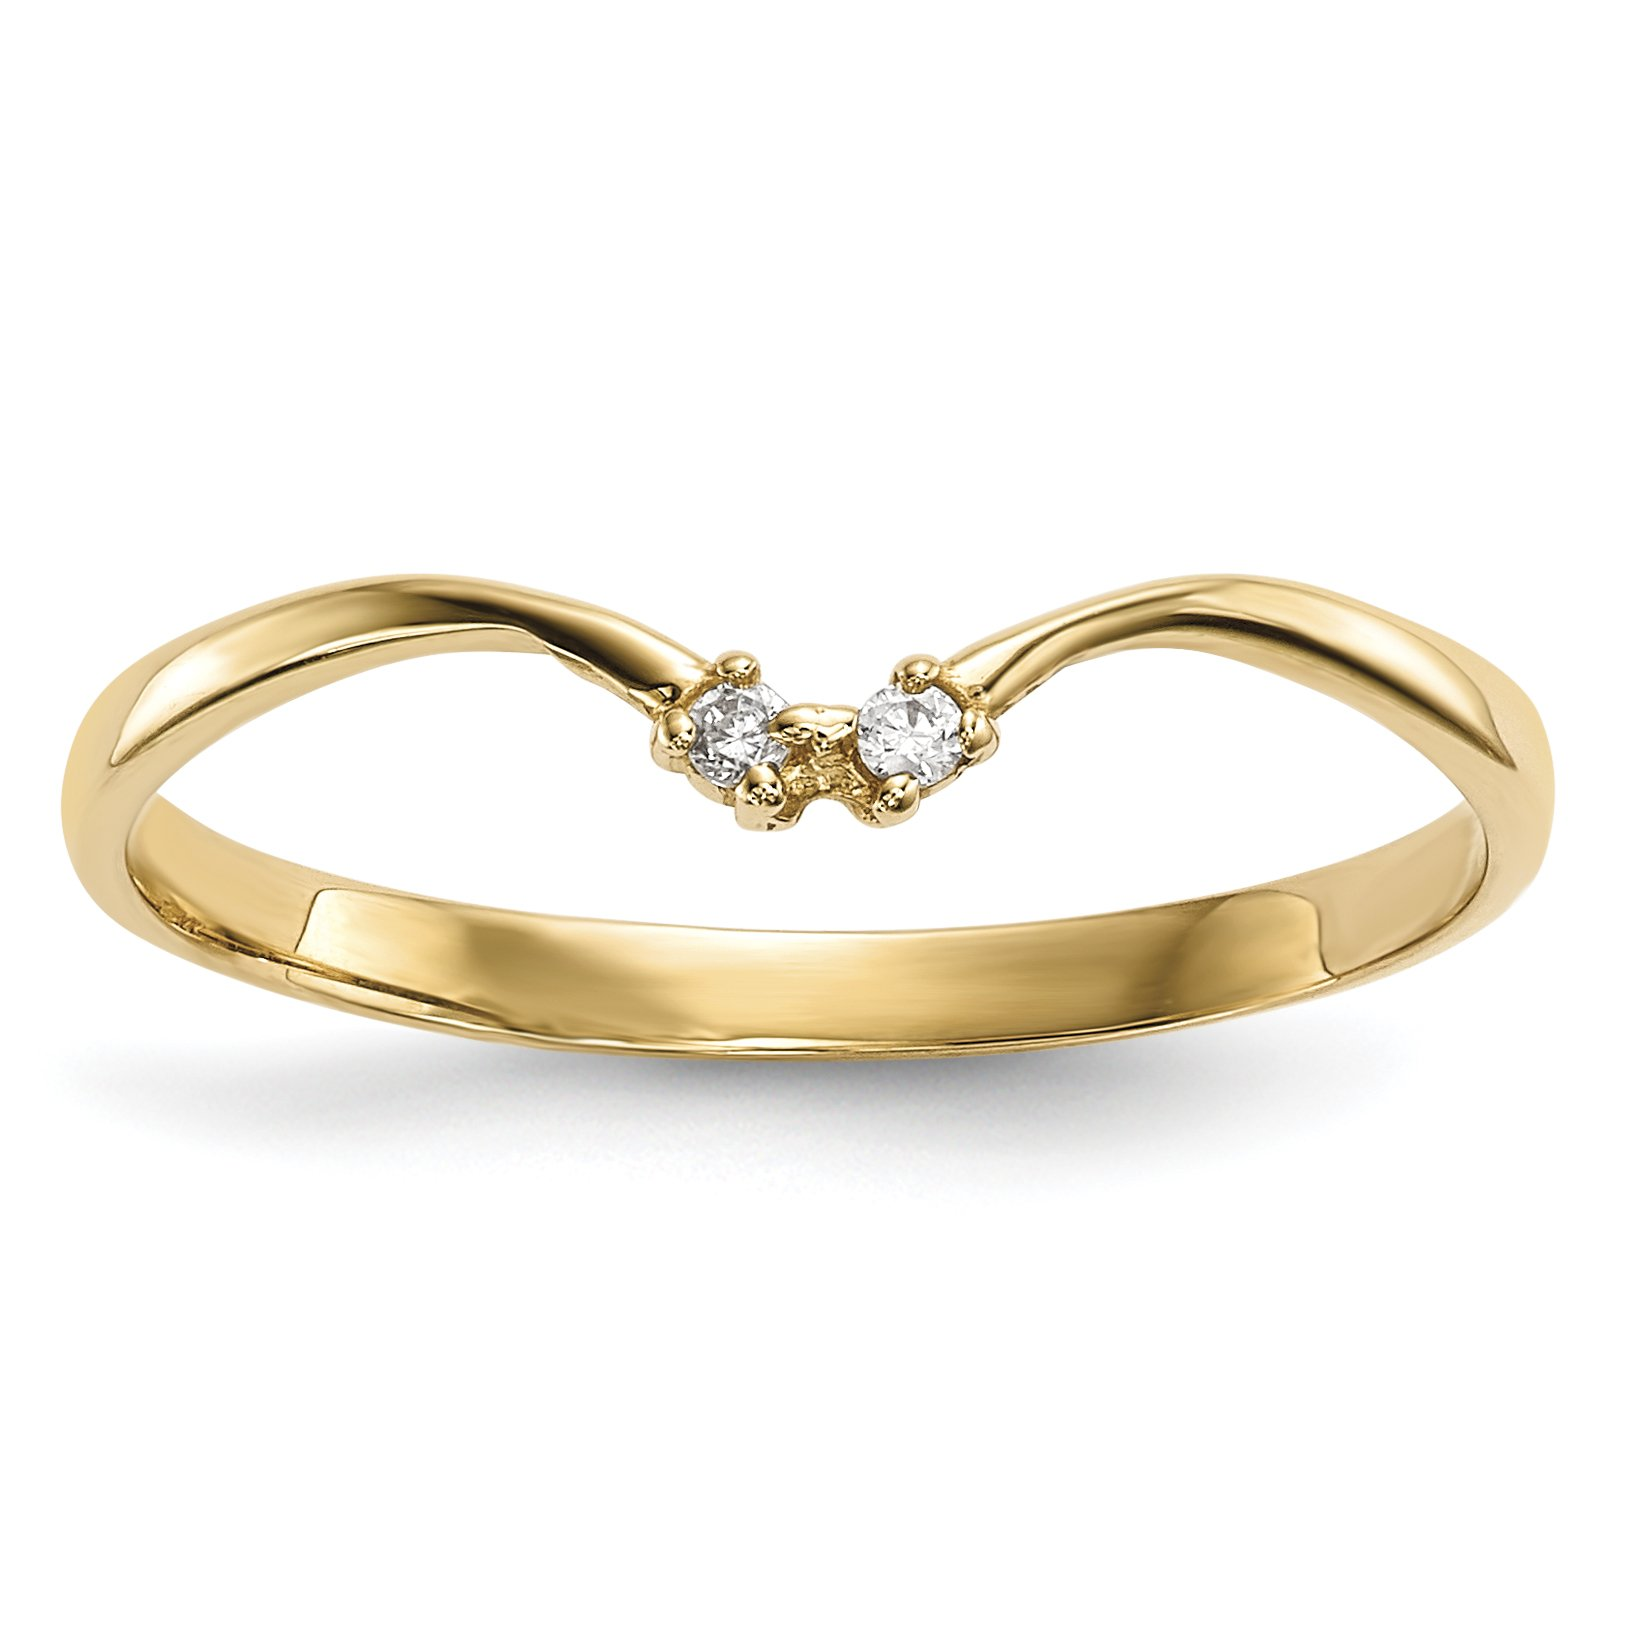 ICE CARATS 14k Yellow Gold 2 Stone Cubic Zirconia Cz Wrap Band Ring Size 7.00 Fine Jewelry Gift Set For Women Heart